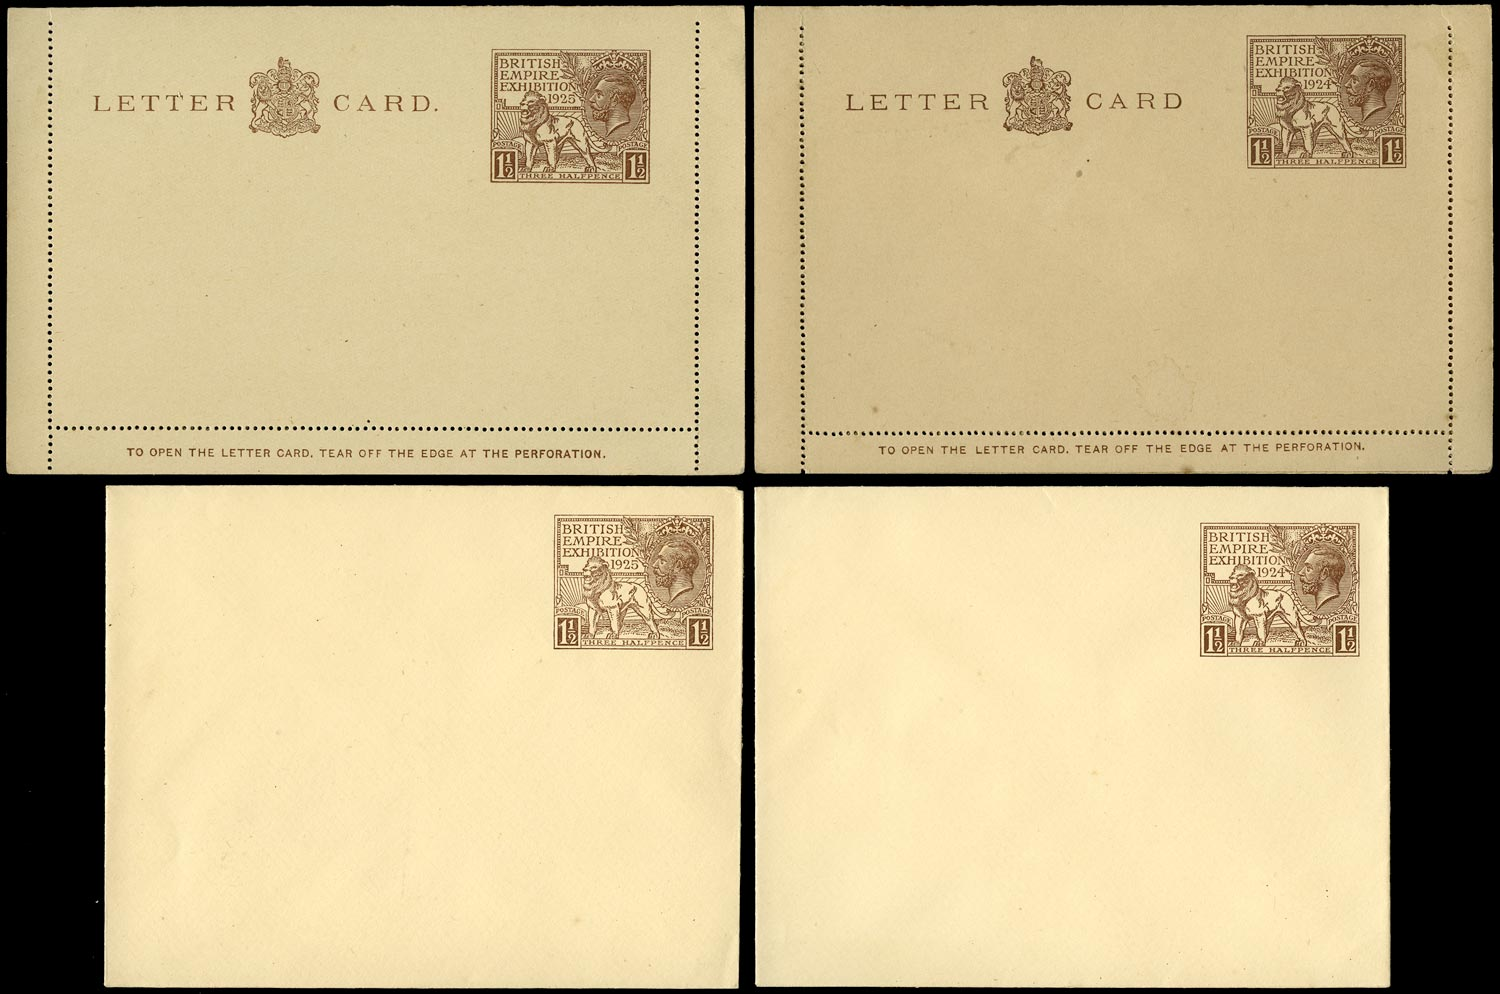 GB 1924 Postal Stationery group of four envelopes, letter cards